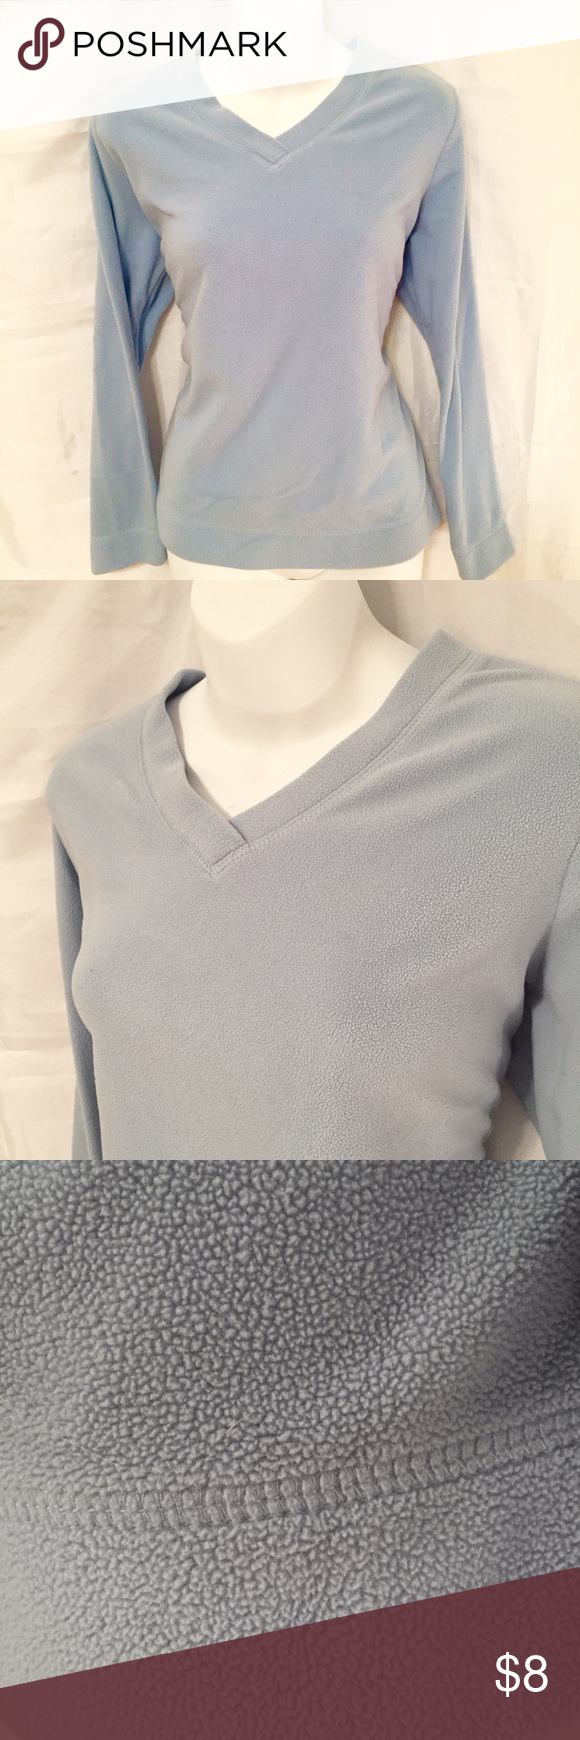 Baby blue long sleeved fleece Baby blue long sleeved v-neck fleece. Perfect for the upcoming cooler weather! Made for Life Tops Sweatshirts & Hoodies